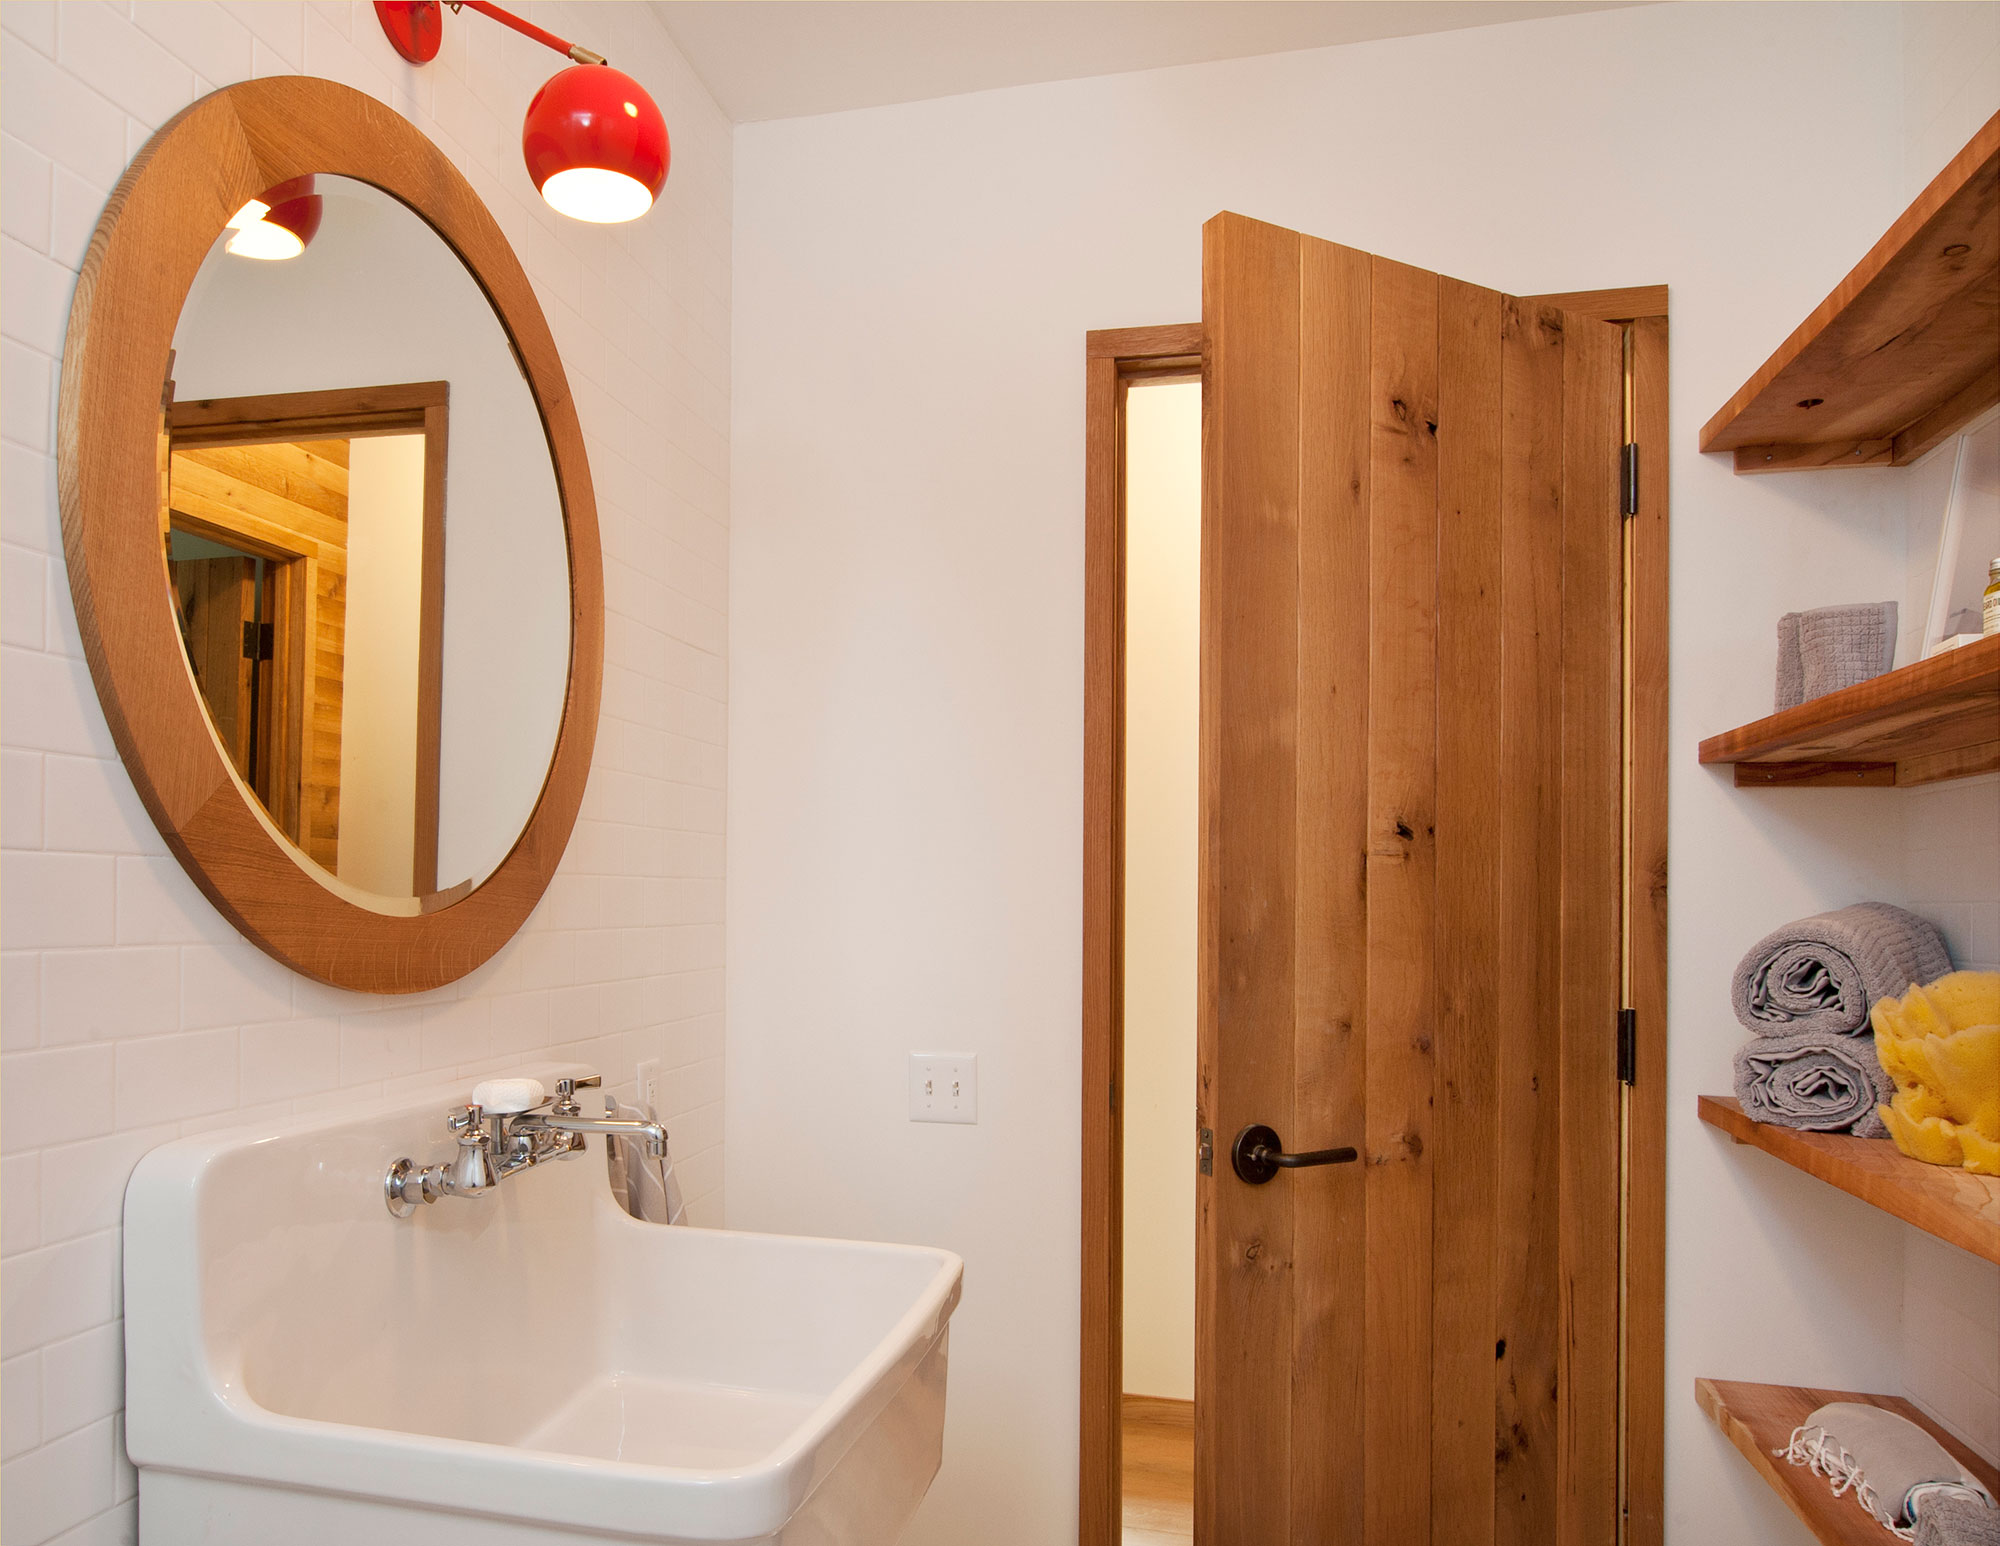 Sink, Mirror, Wood and Glass House in Kerhonkson